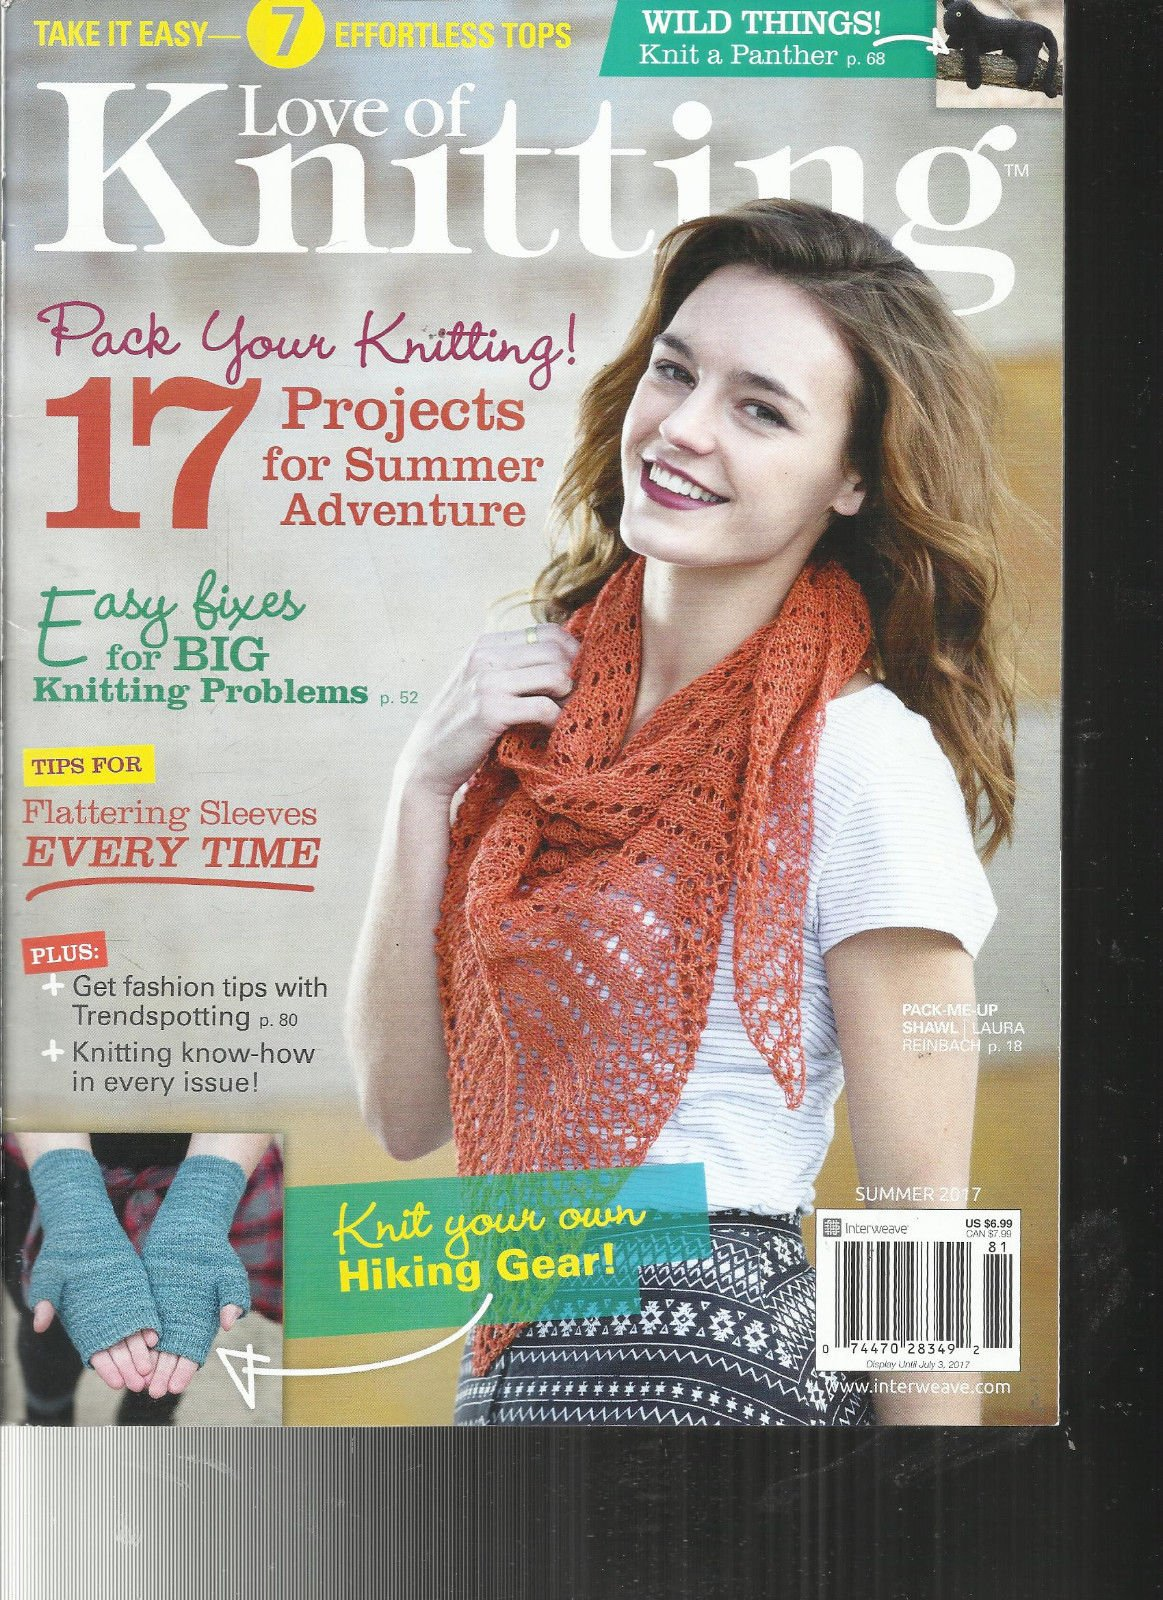 LOVE OF KNITTING MAGAZINE, SUMMER, 2017 17 PROJECTS FOR SUMMER ADVENTURE